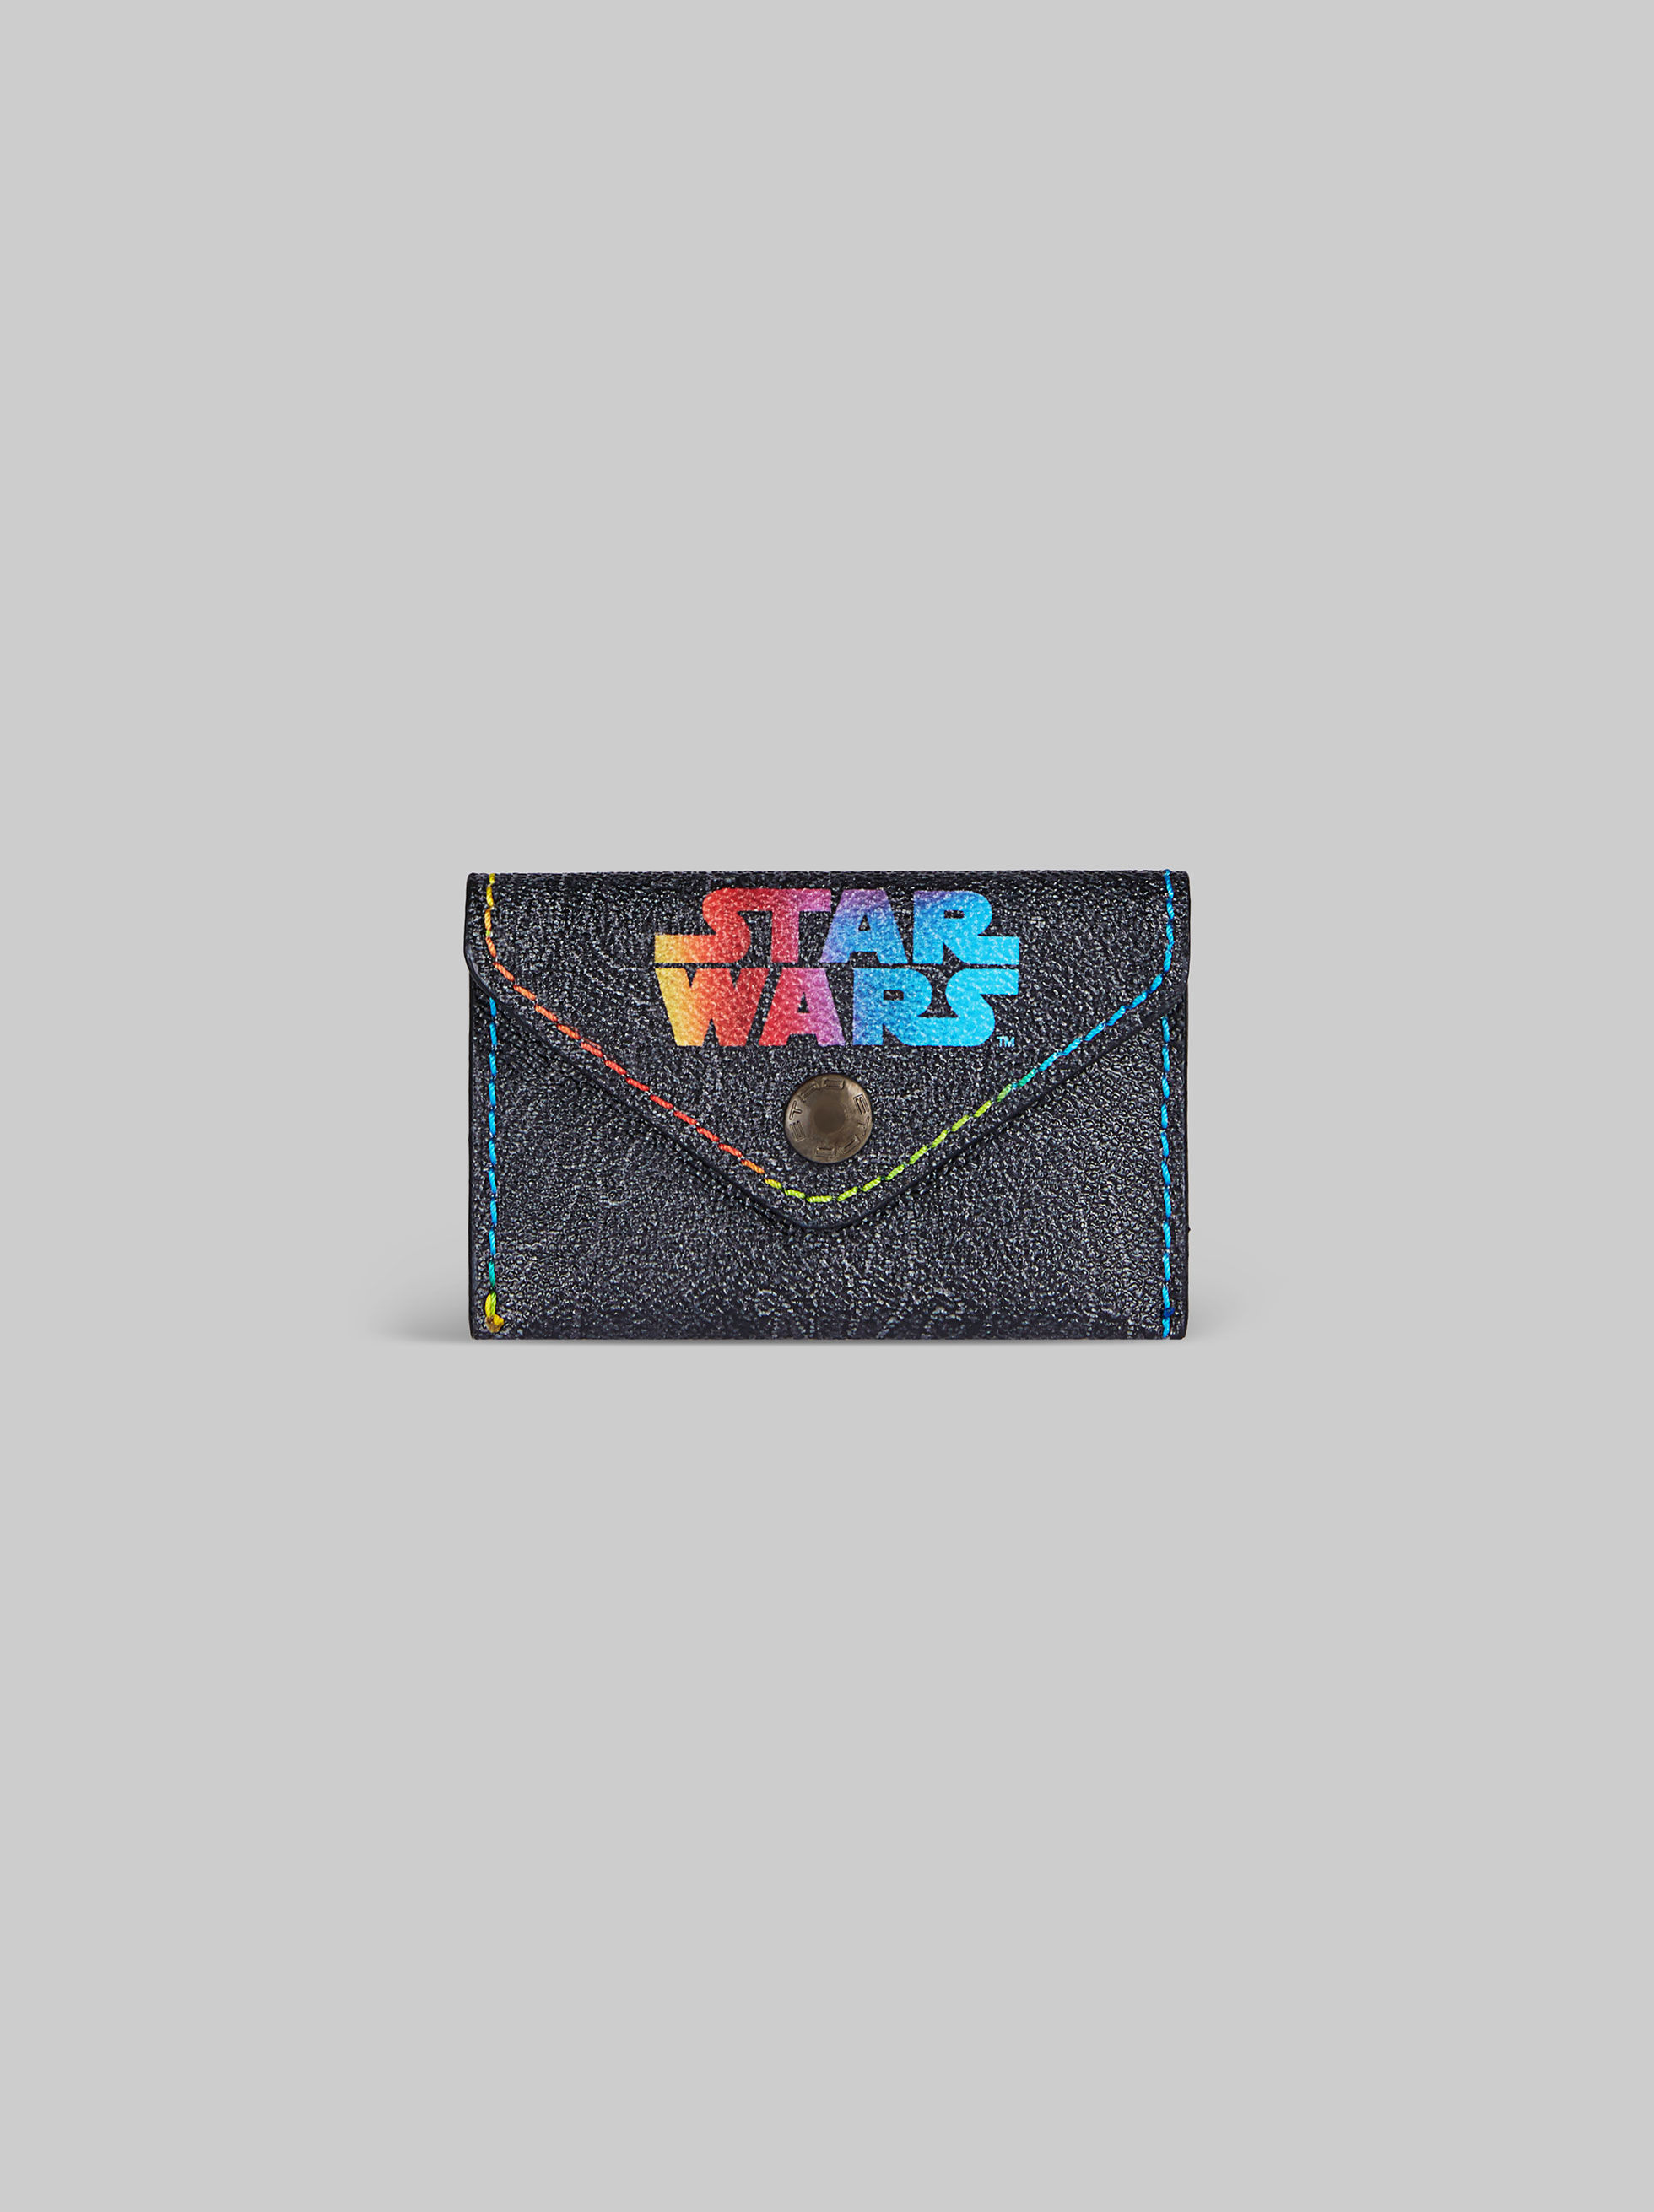 PORTE-CARTES ETRO X STAR WARS